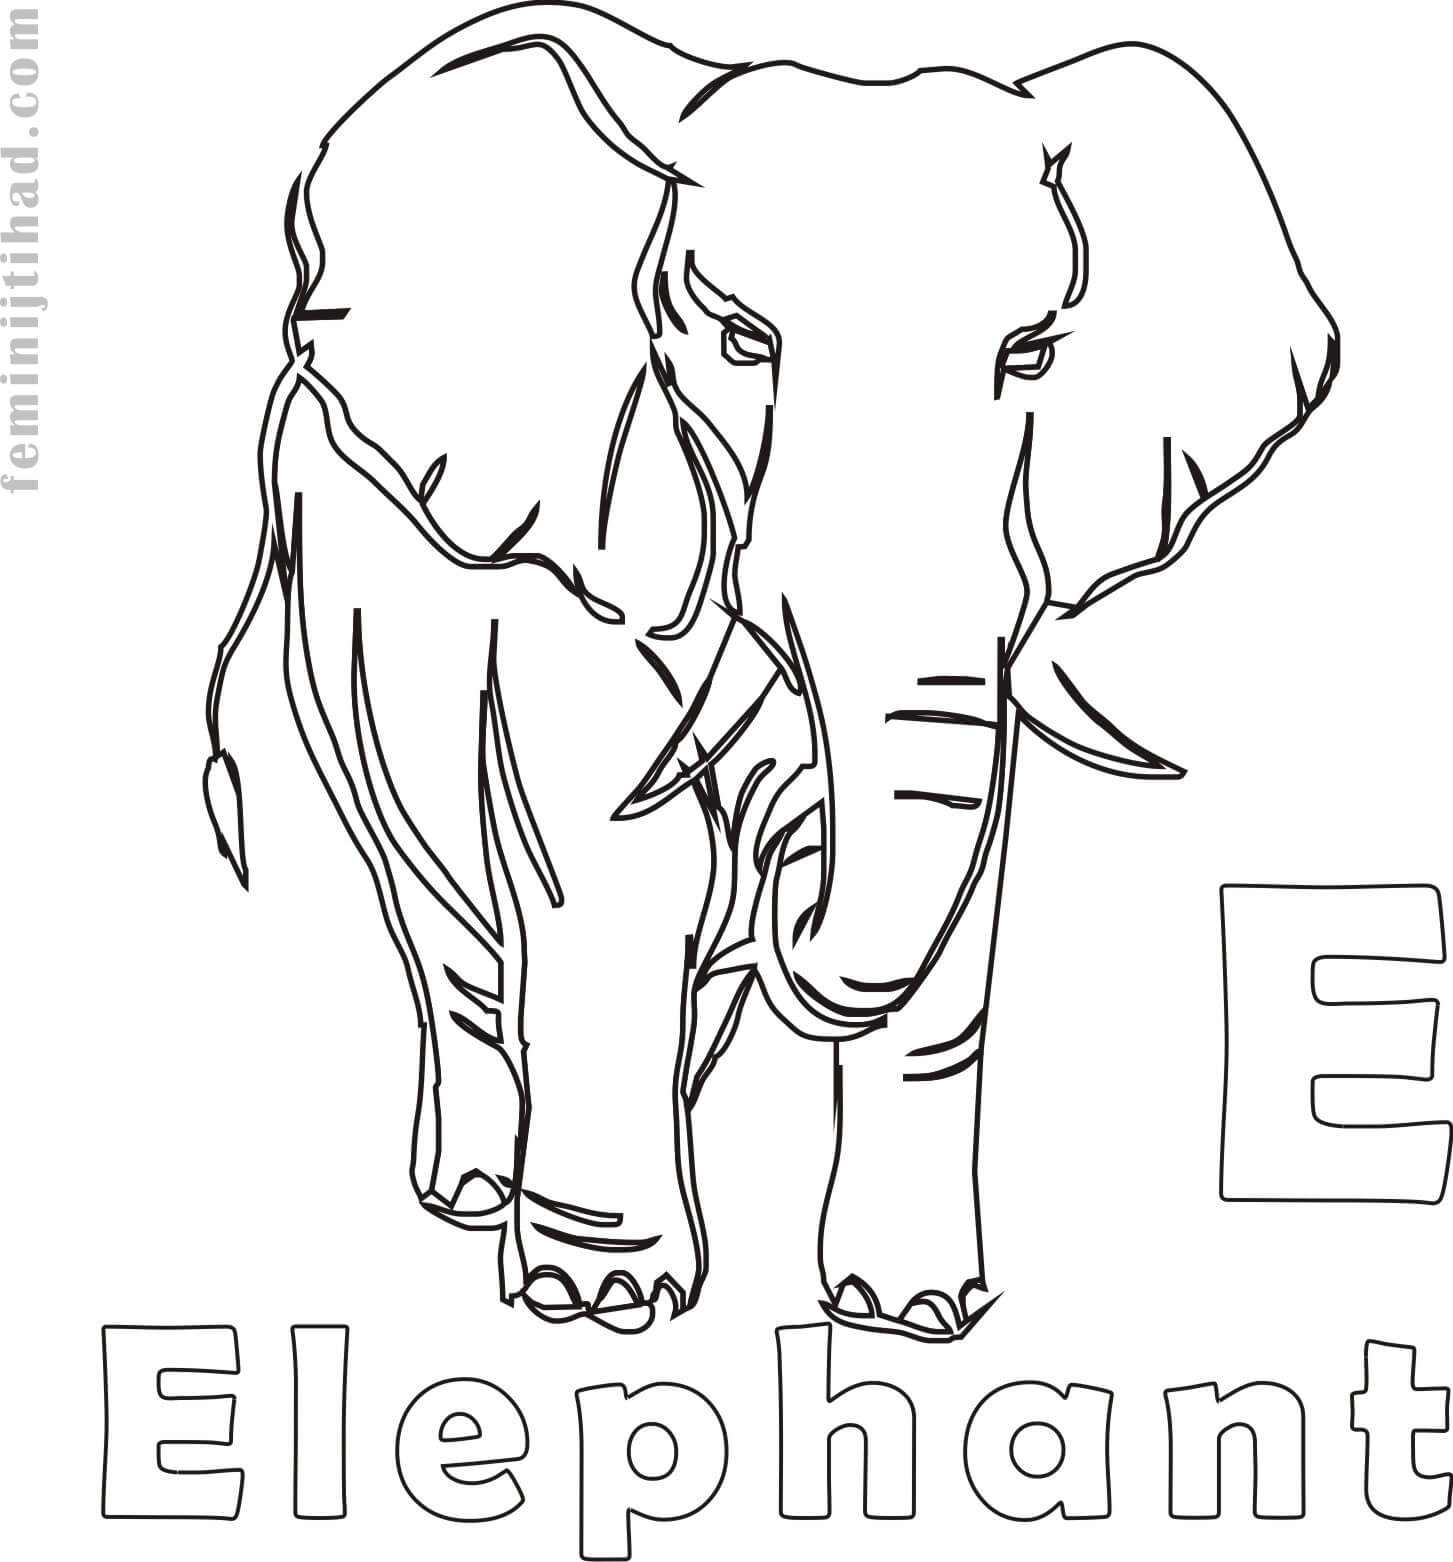 1453x1562 Elephant Coloring Pages To Print For Free Coloring Pages For Kids